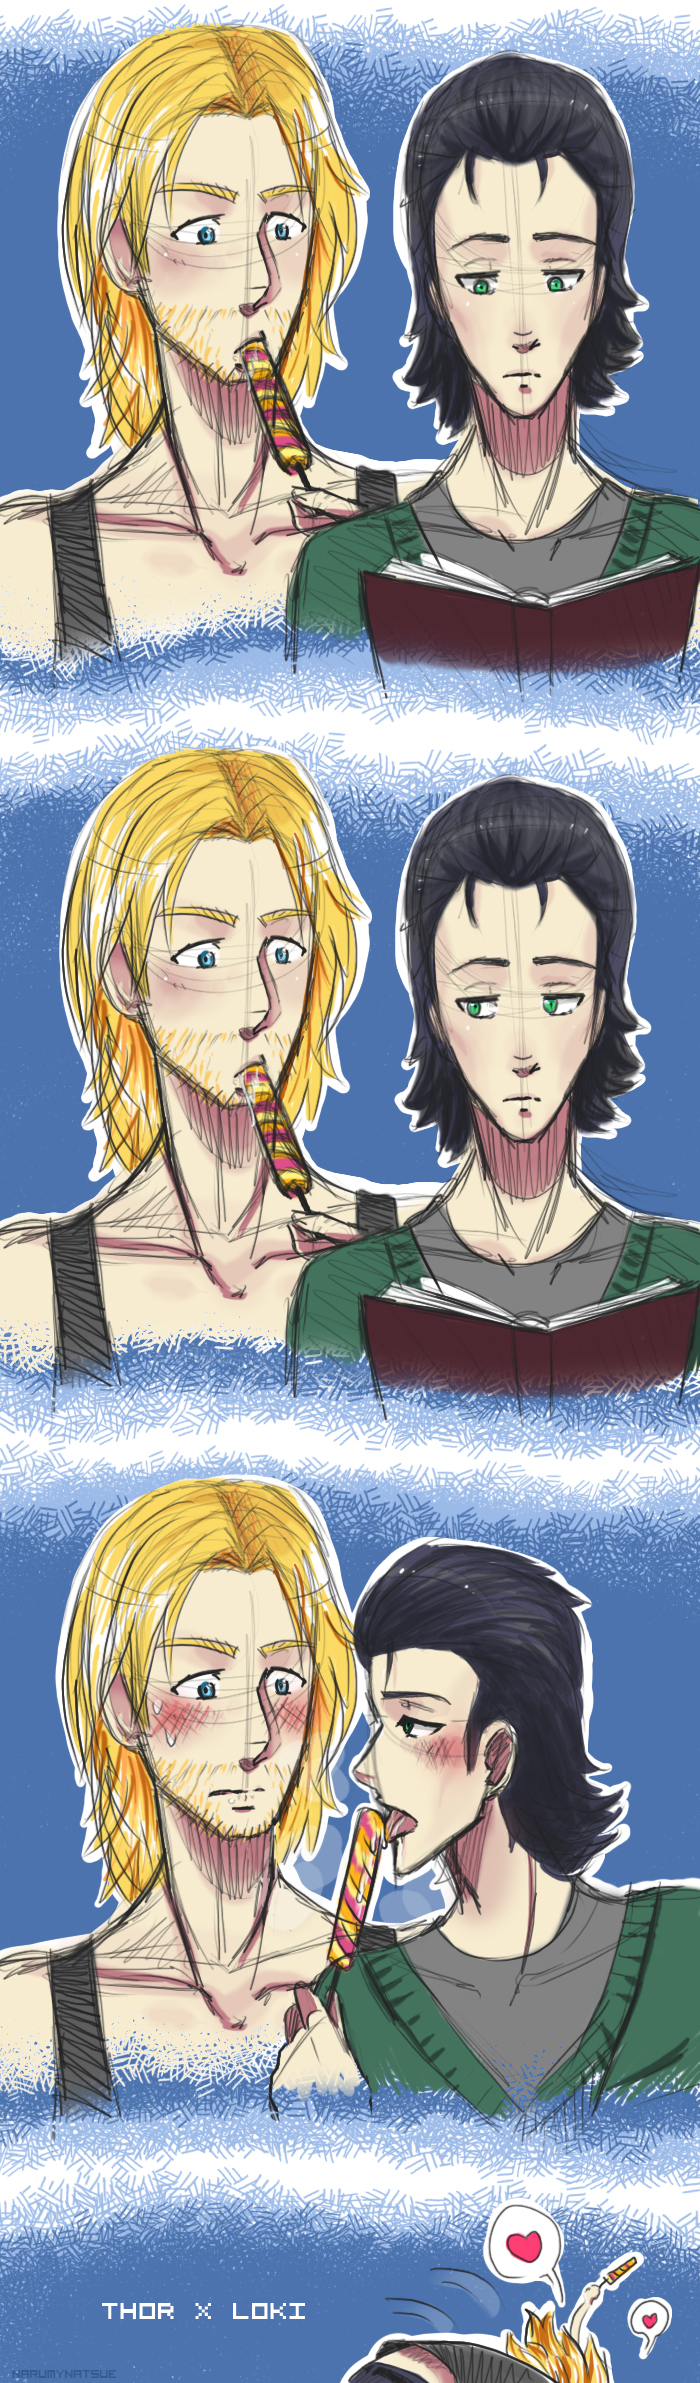 Thor x Loki by NarumyNatsue on DeviantArt